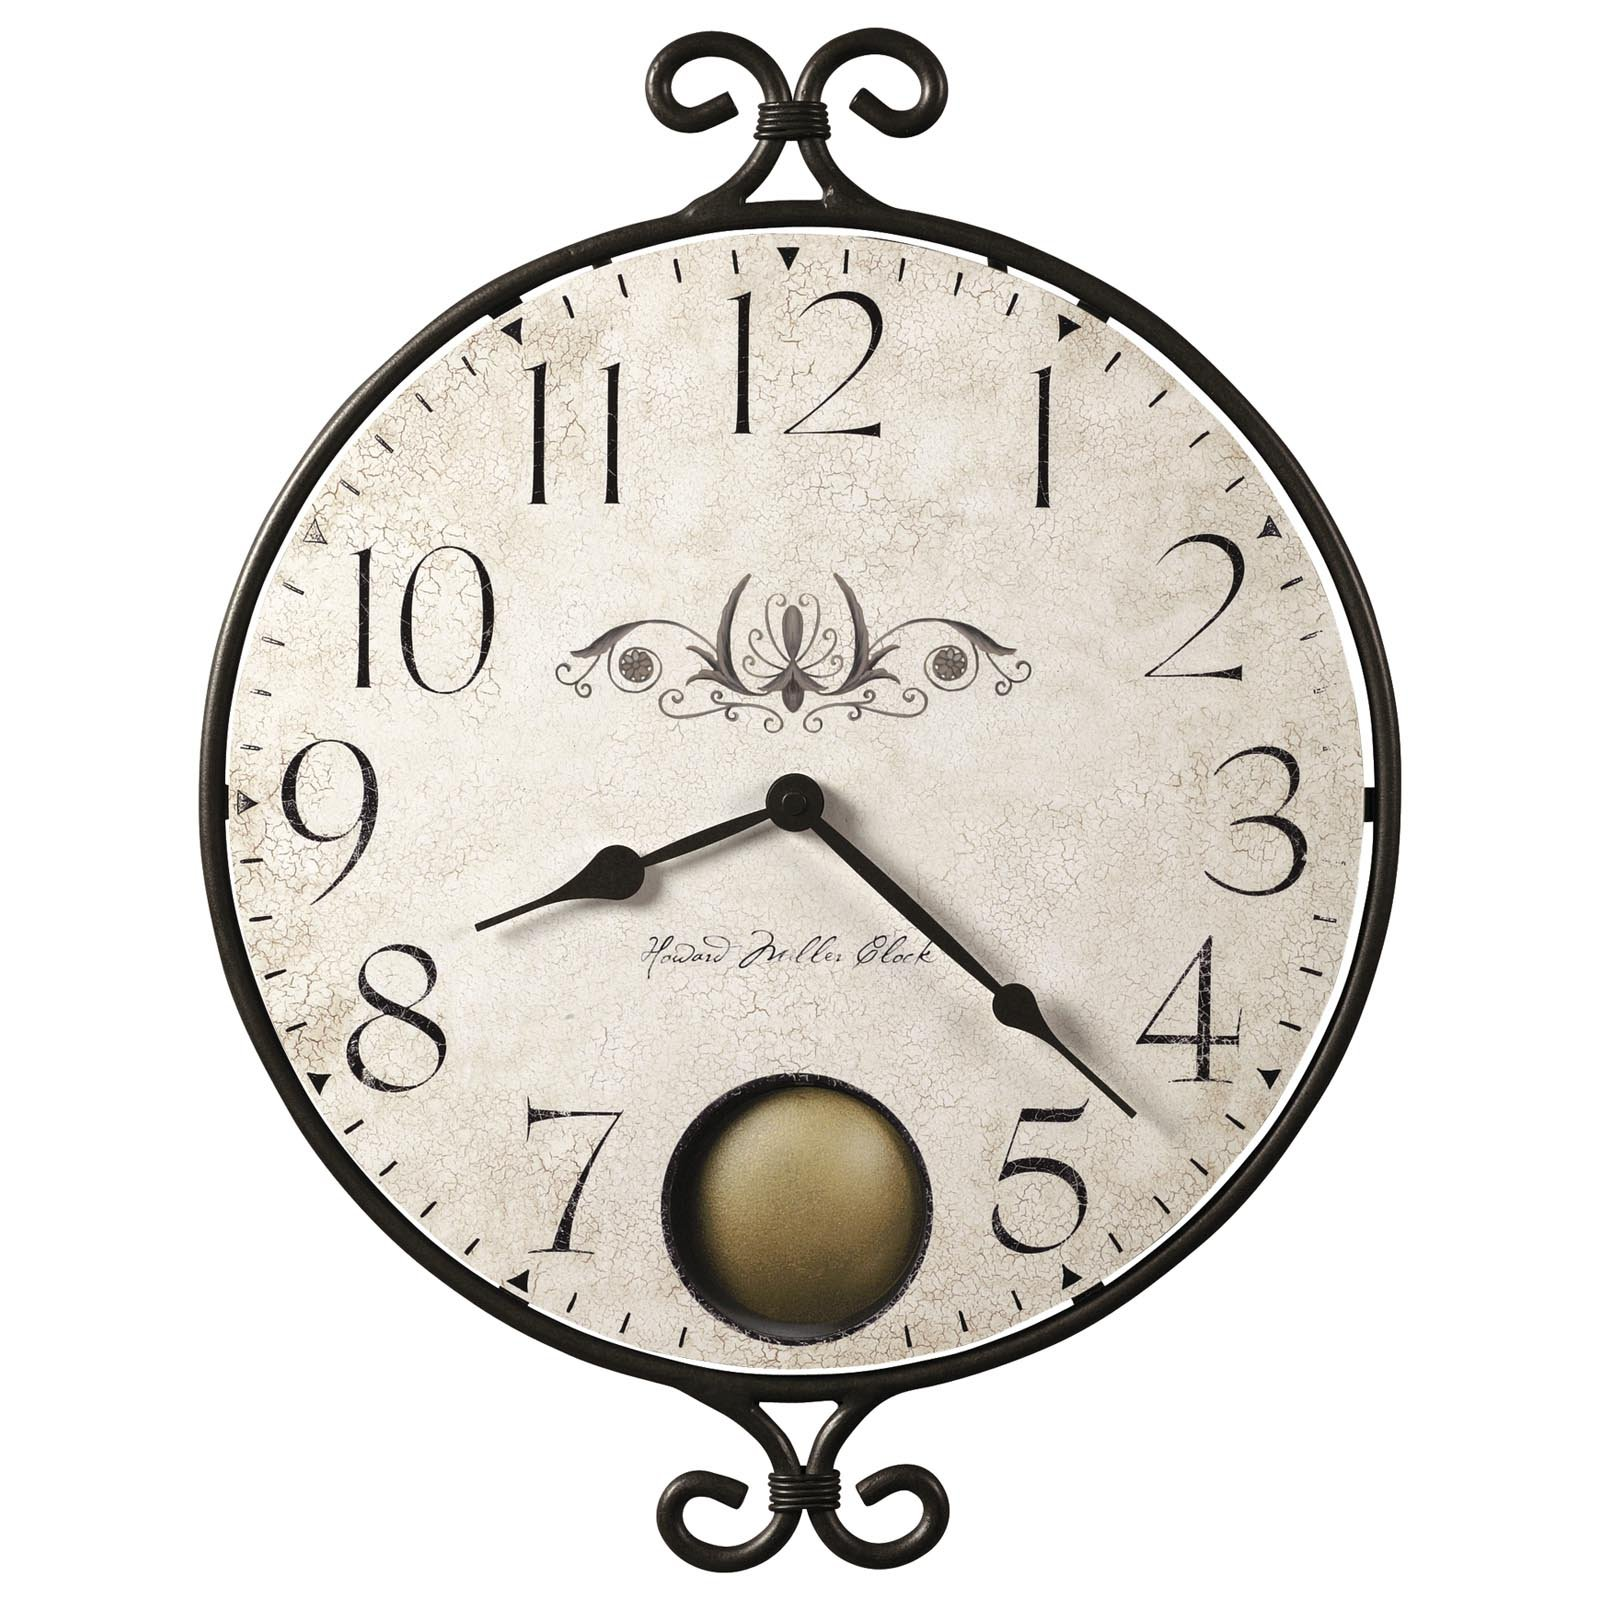 Howard Miller Randall Wall Clock - 14 in. Wide